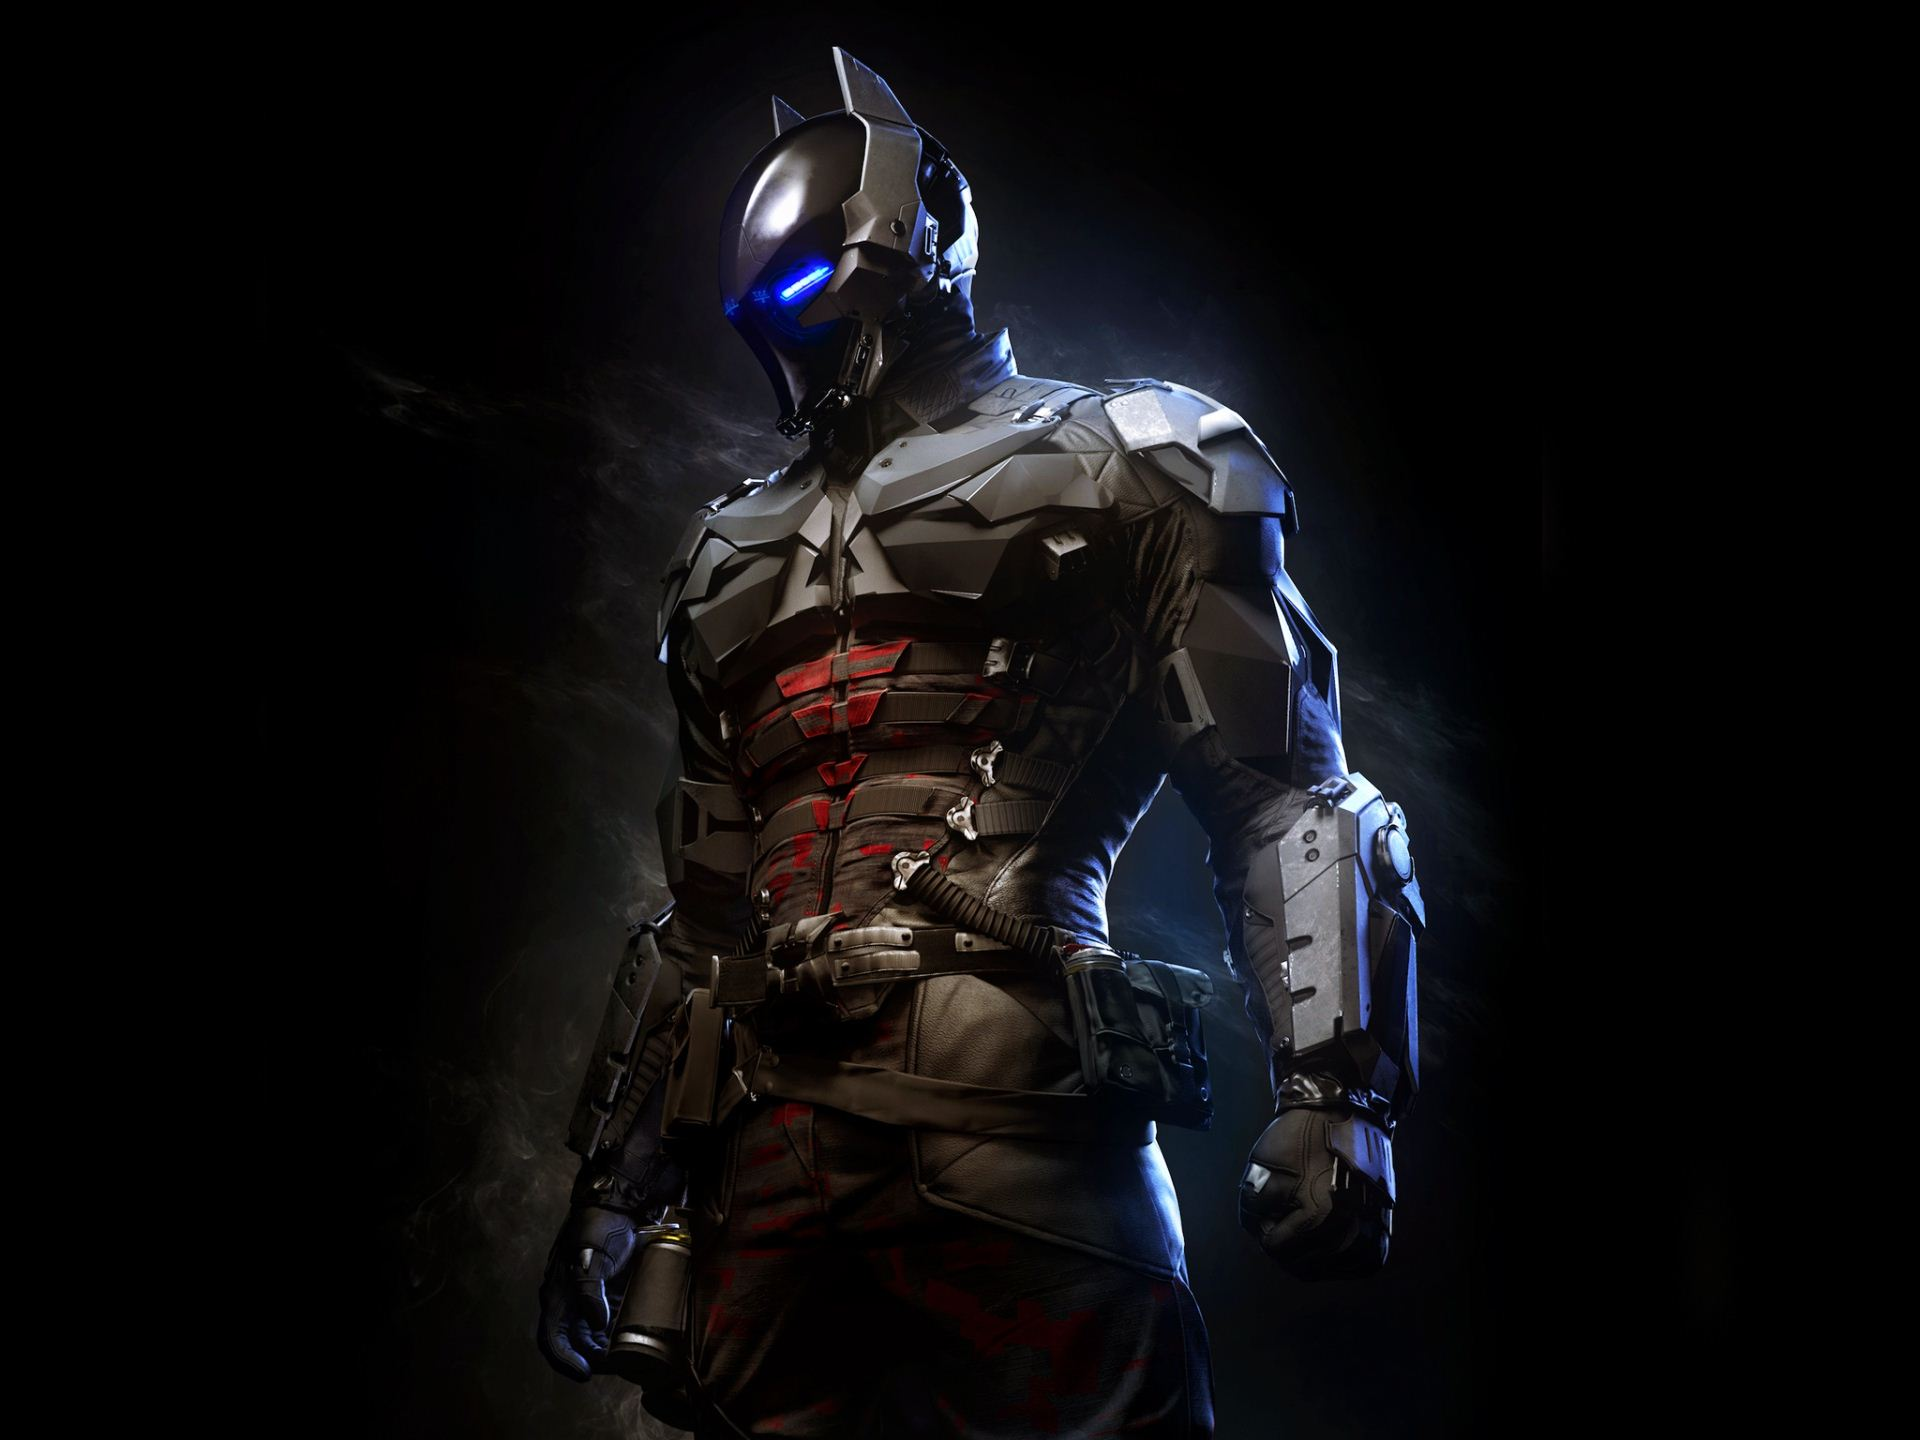 Play As The Man Bat In Batman Arkham Knight With This Awesome Mod